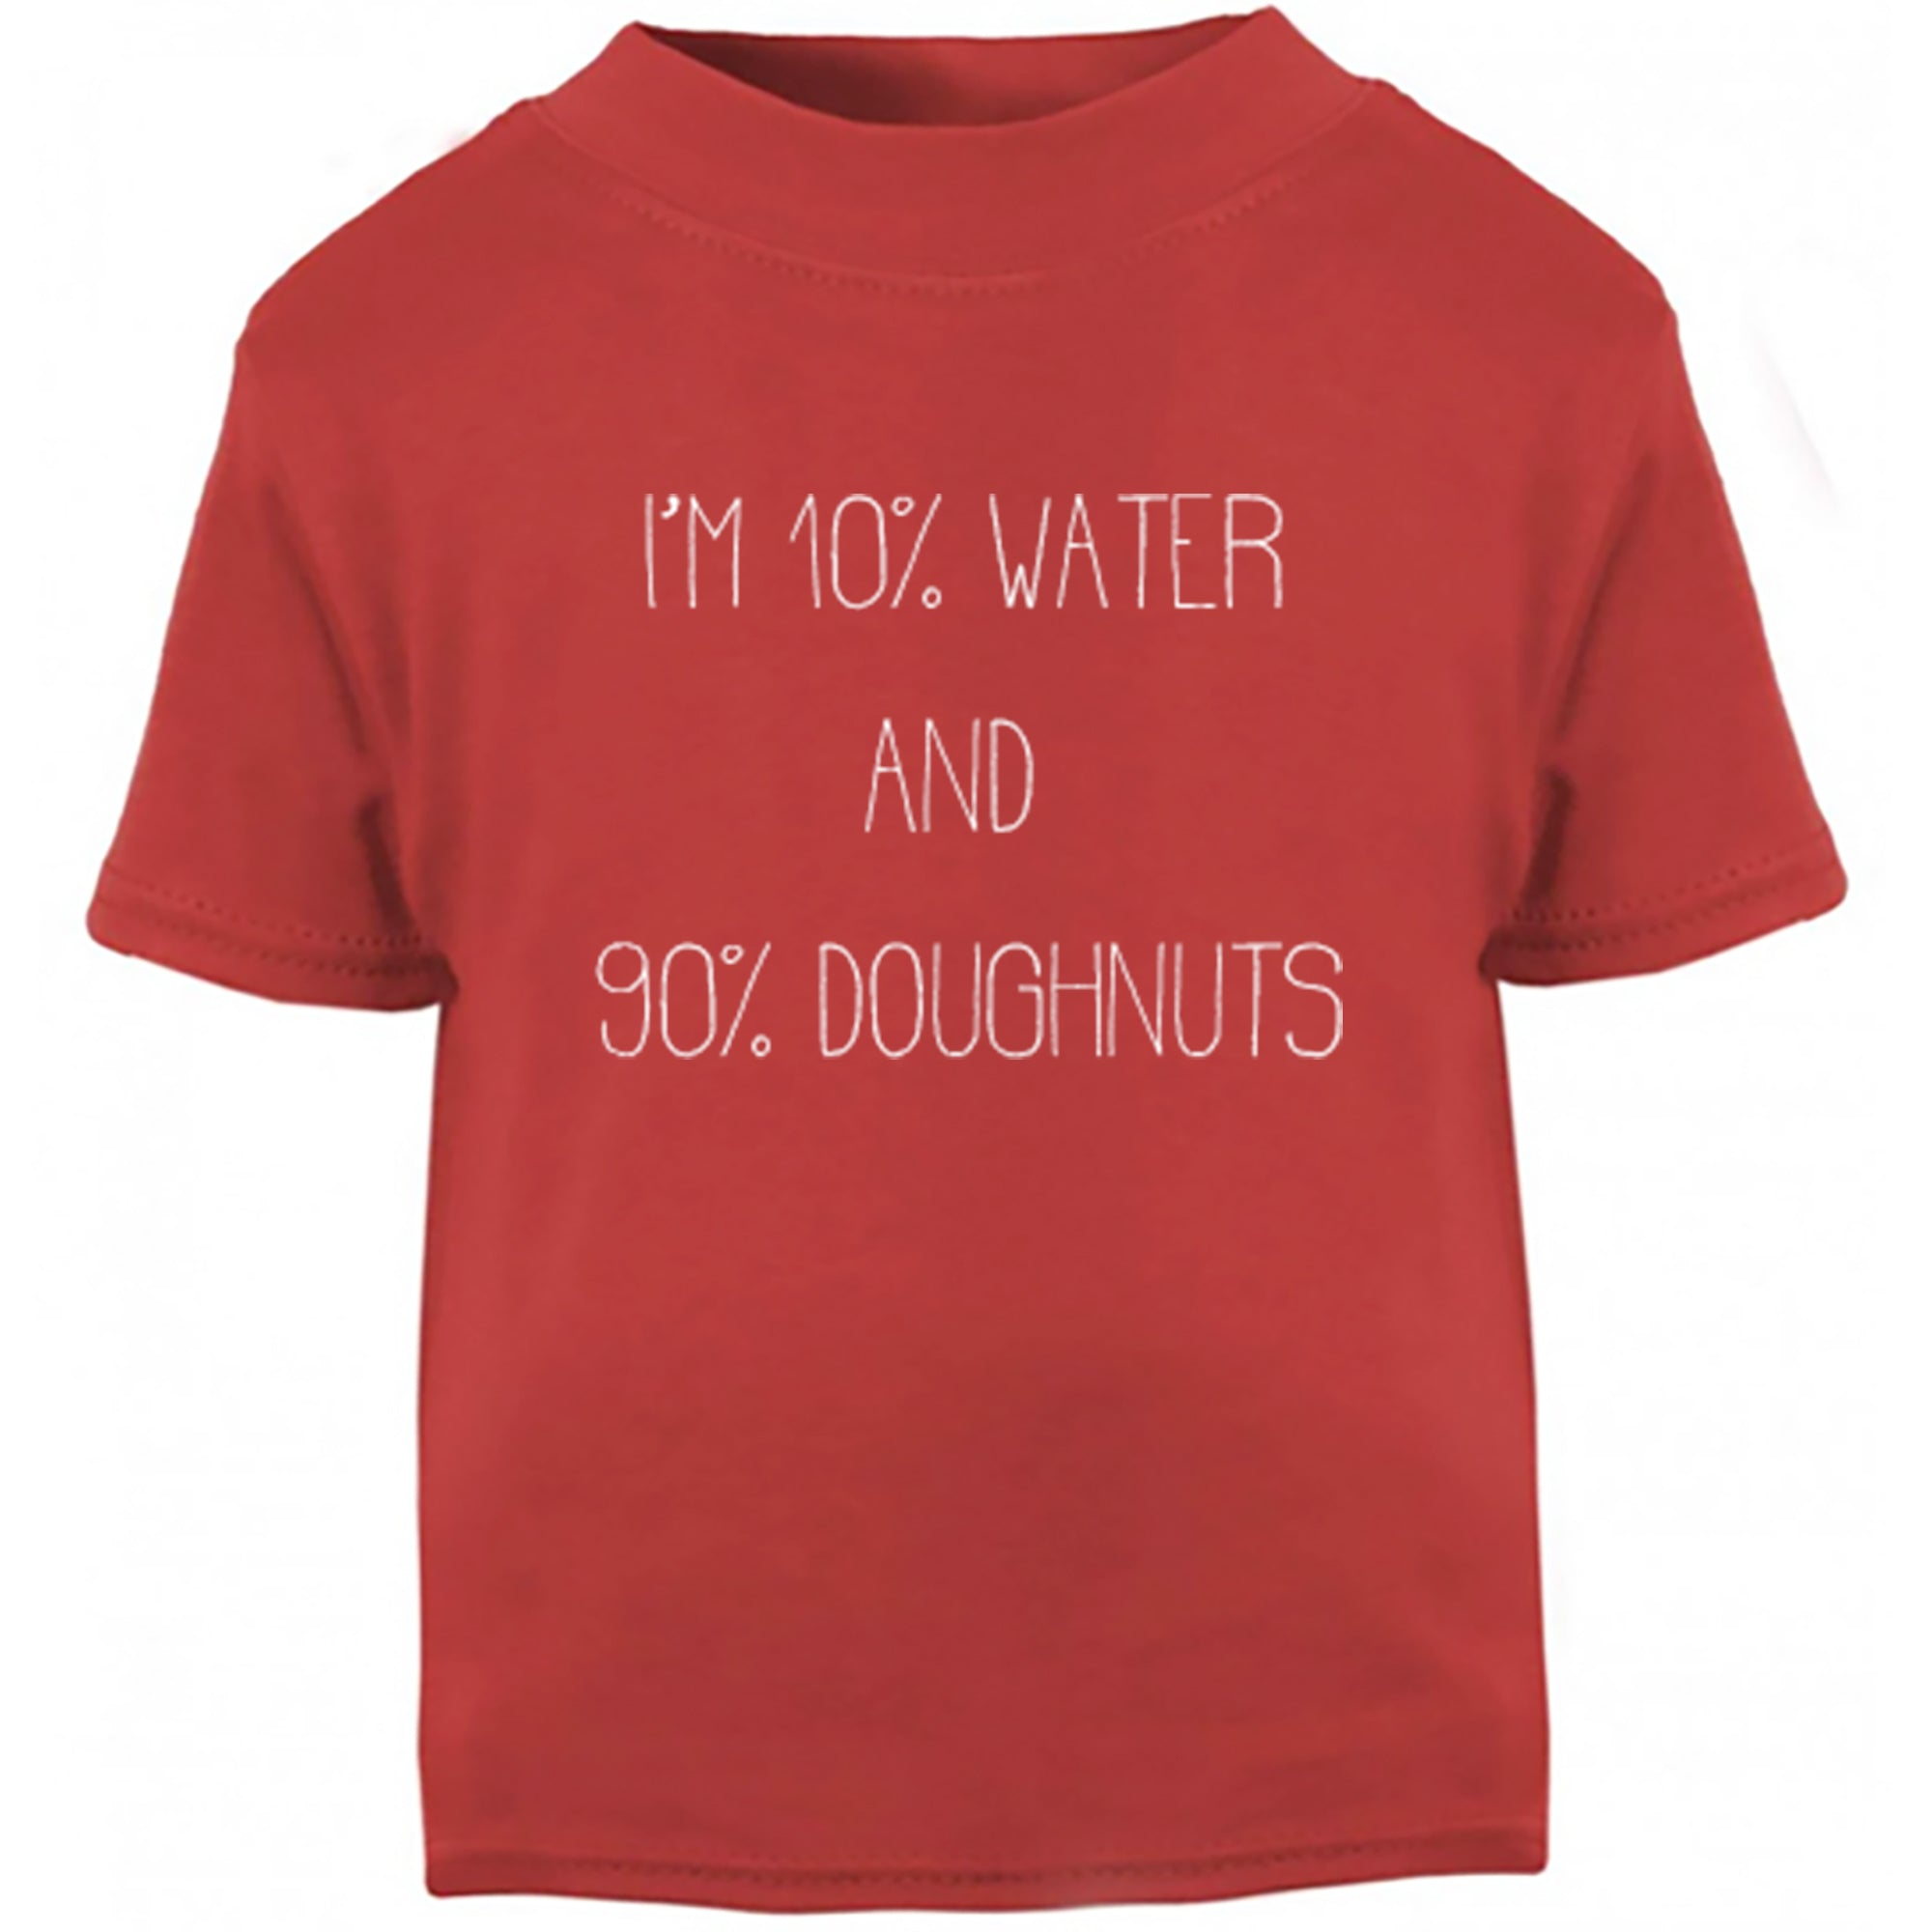 I'm 10% Water And 90% Doughnuts Childrens Ages 3/4-12/14 Unisex Fit T-Shirt S0485 - Illustrated Identity Ltd.